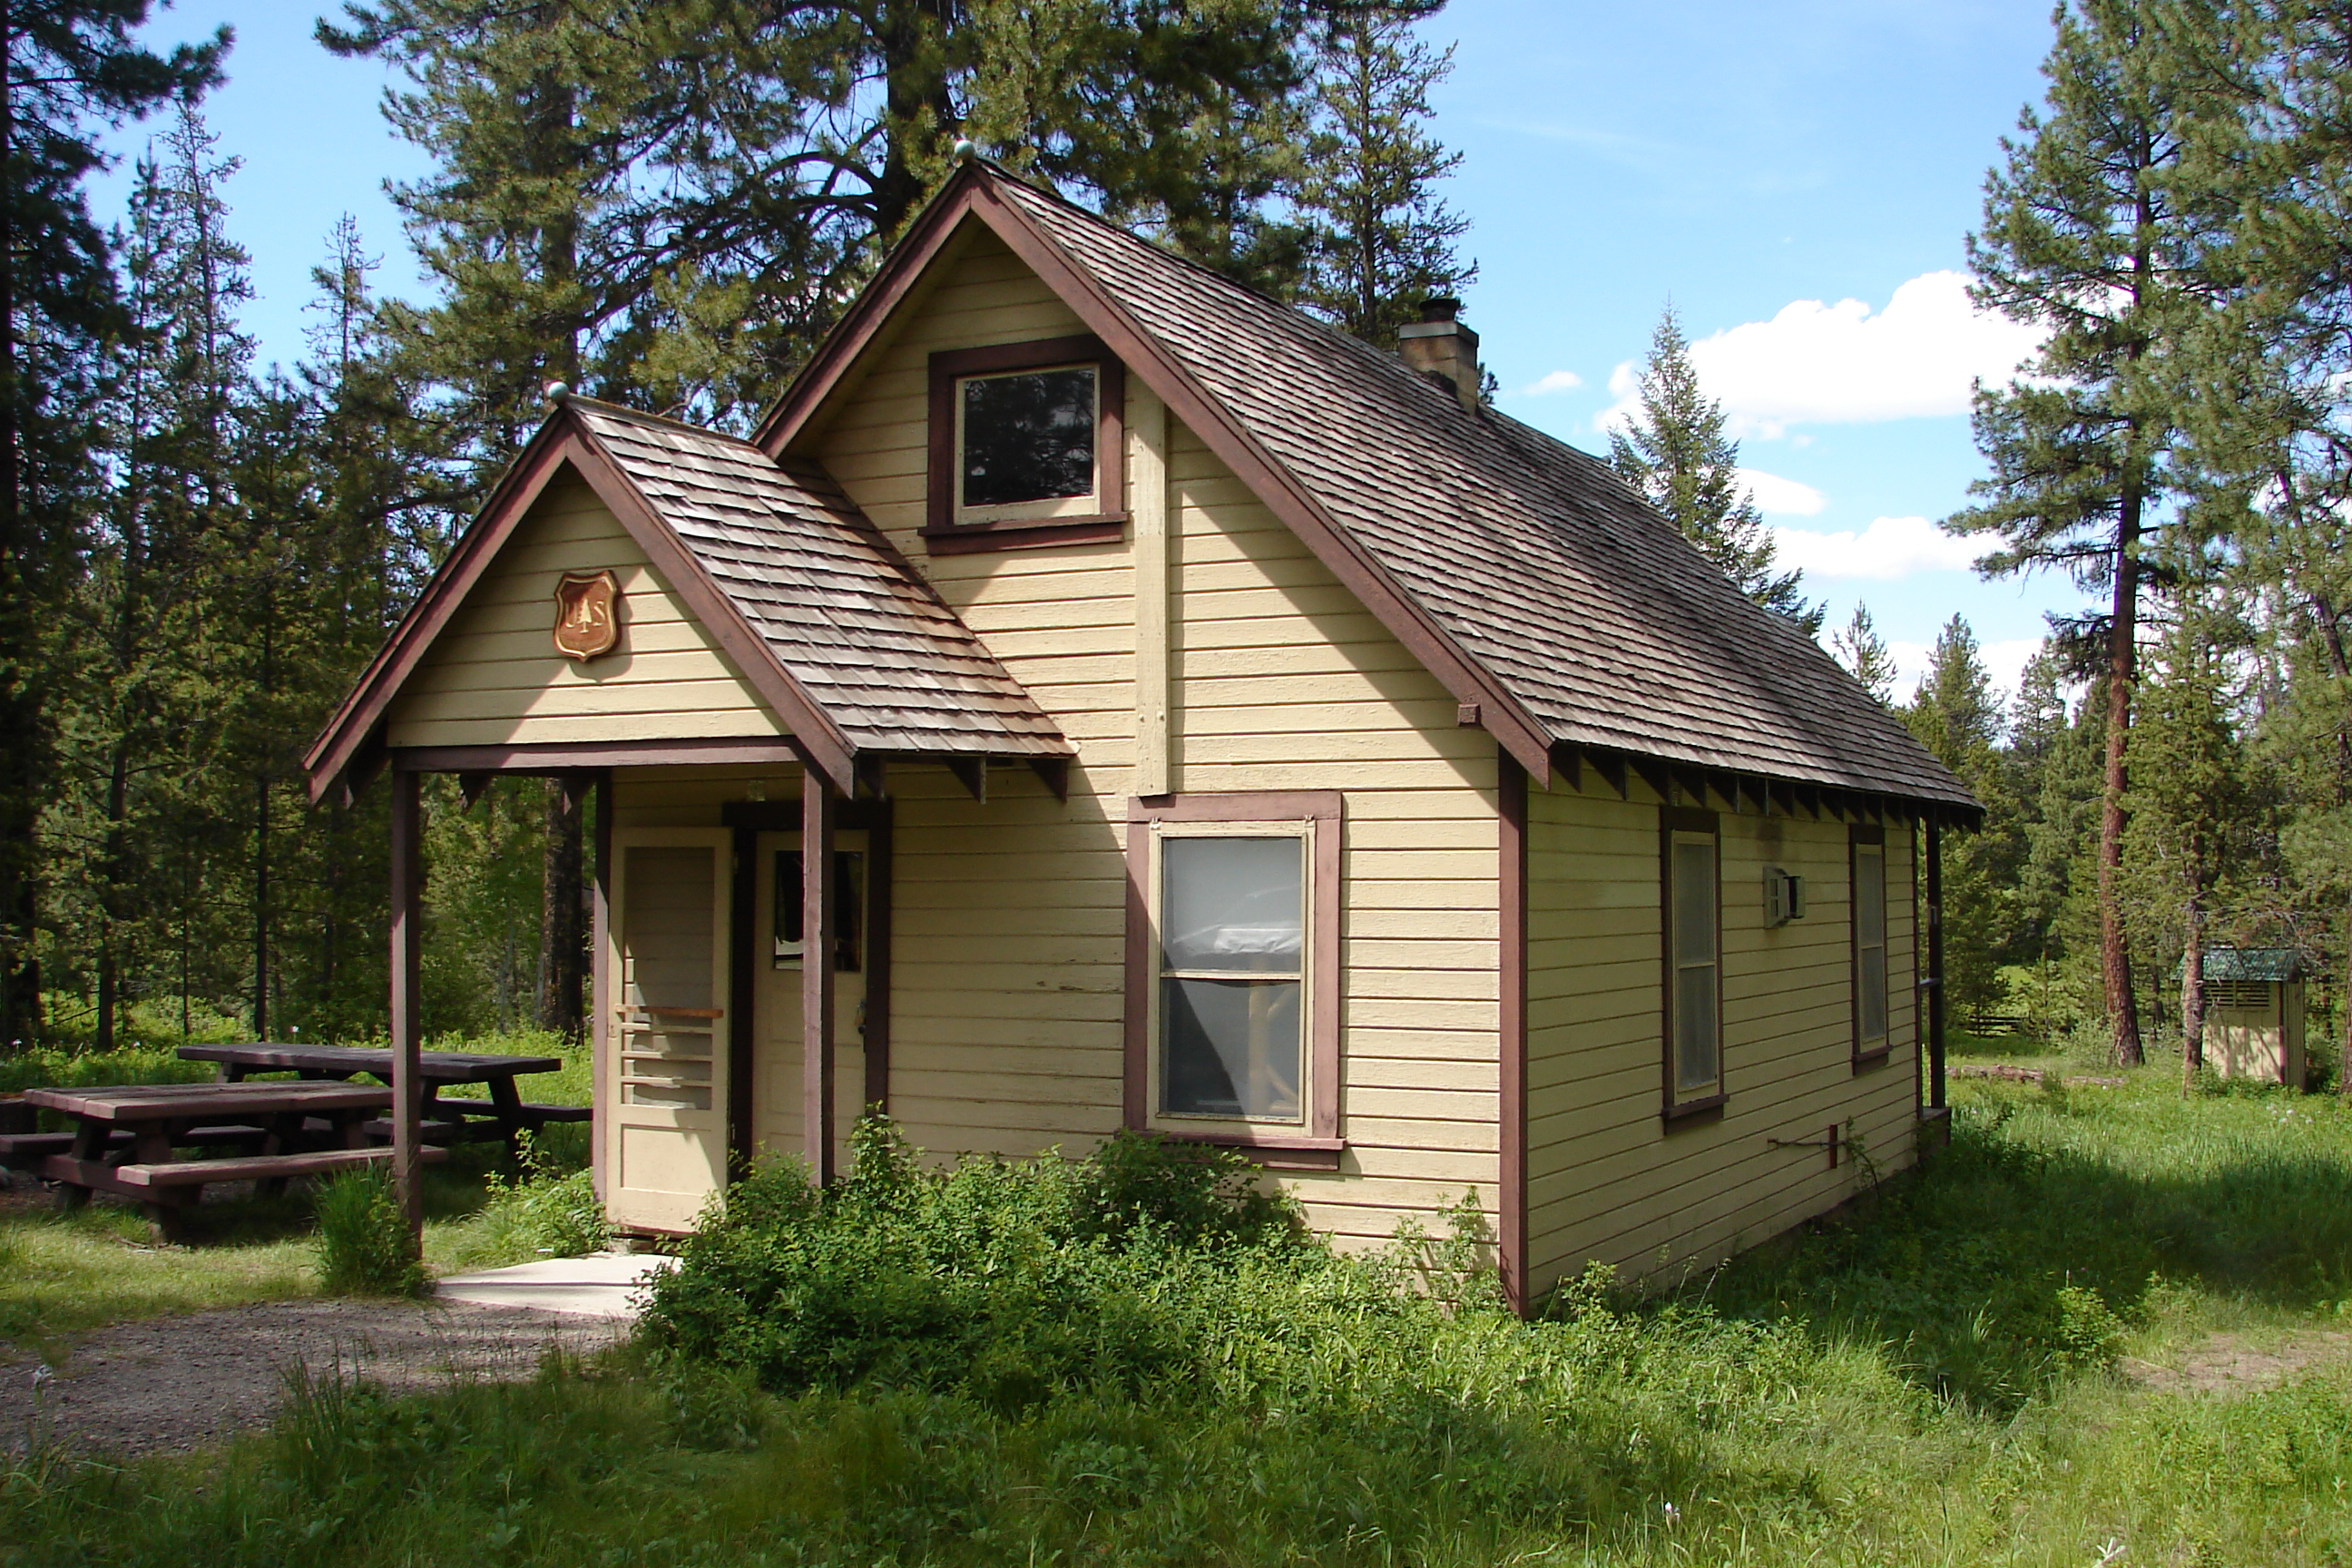 sale to log cabin for oregon in squirrelville cabins the coast rent built